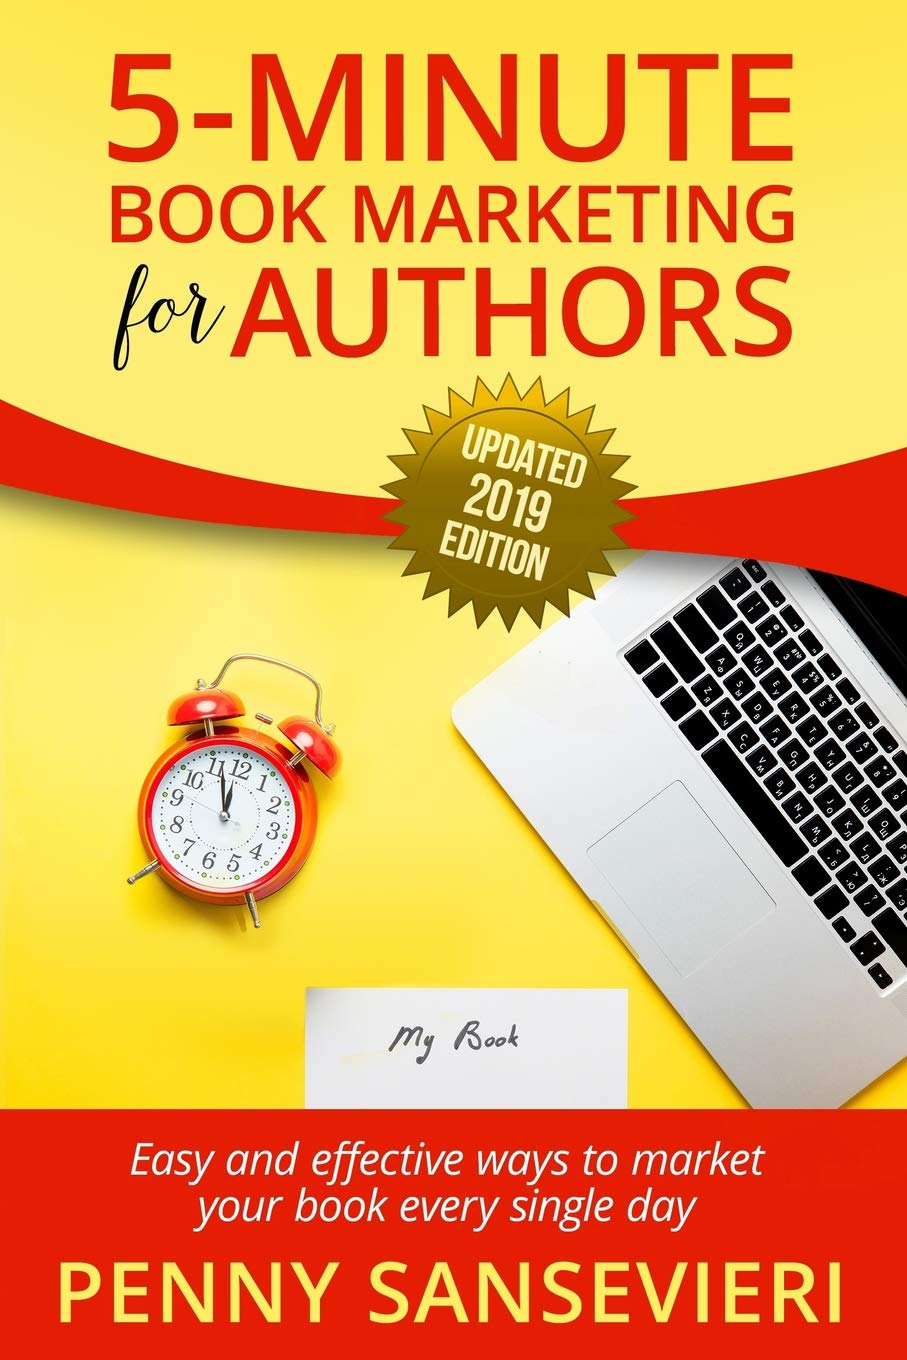 5 Minute Book Marketing for Authors - Updated 2019 Edition ...